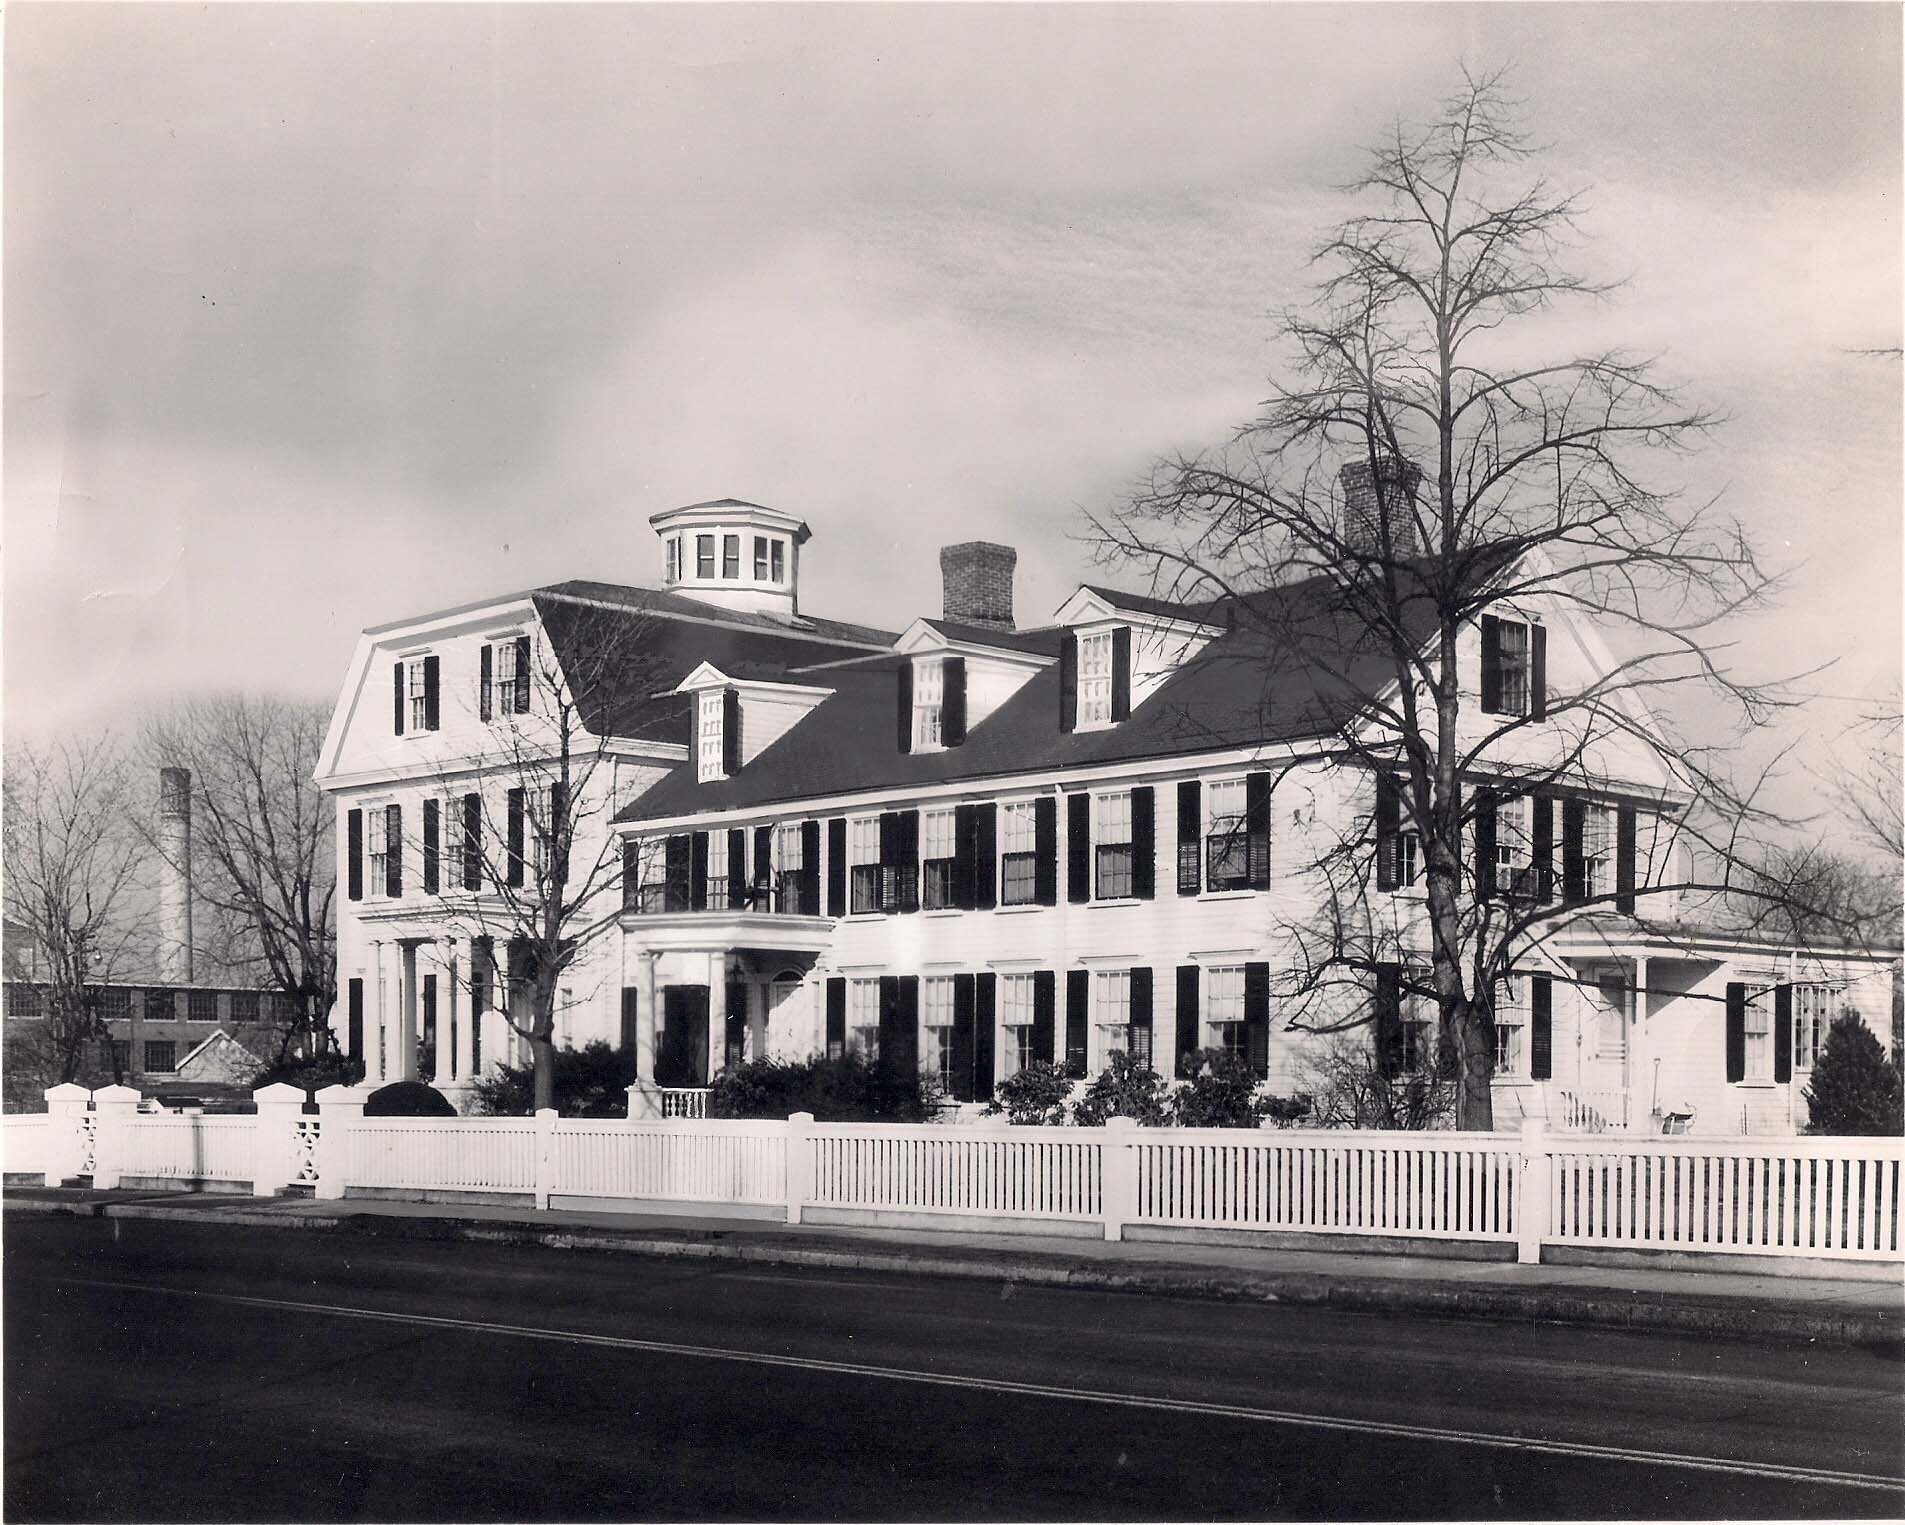 Governor William Sprague Mansion, located at the corner of Cranston Street and Dyer Avenue in Cranston, RI (Photo courtesy of the Cranston Historical Society Facebook Page)